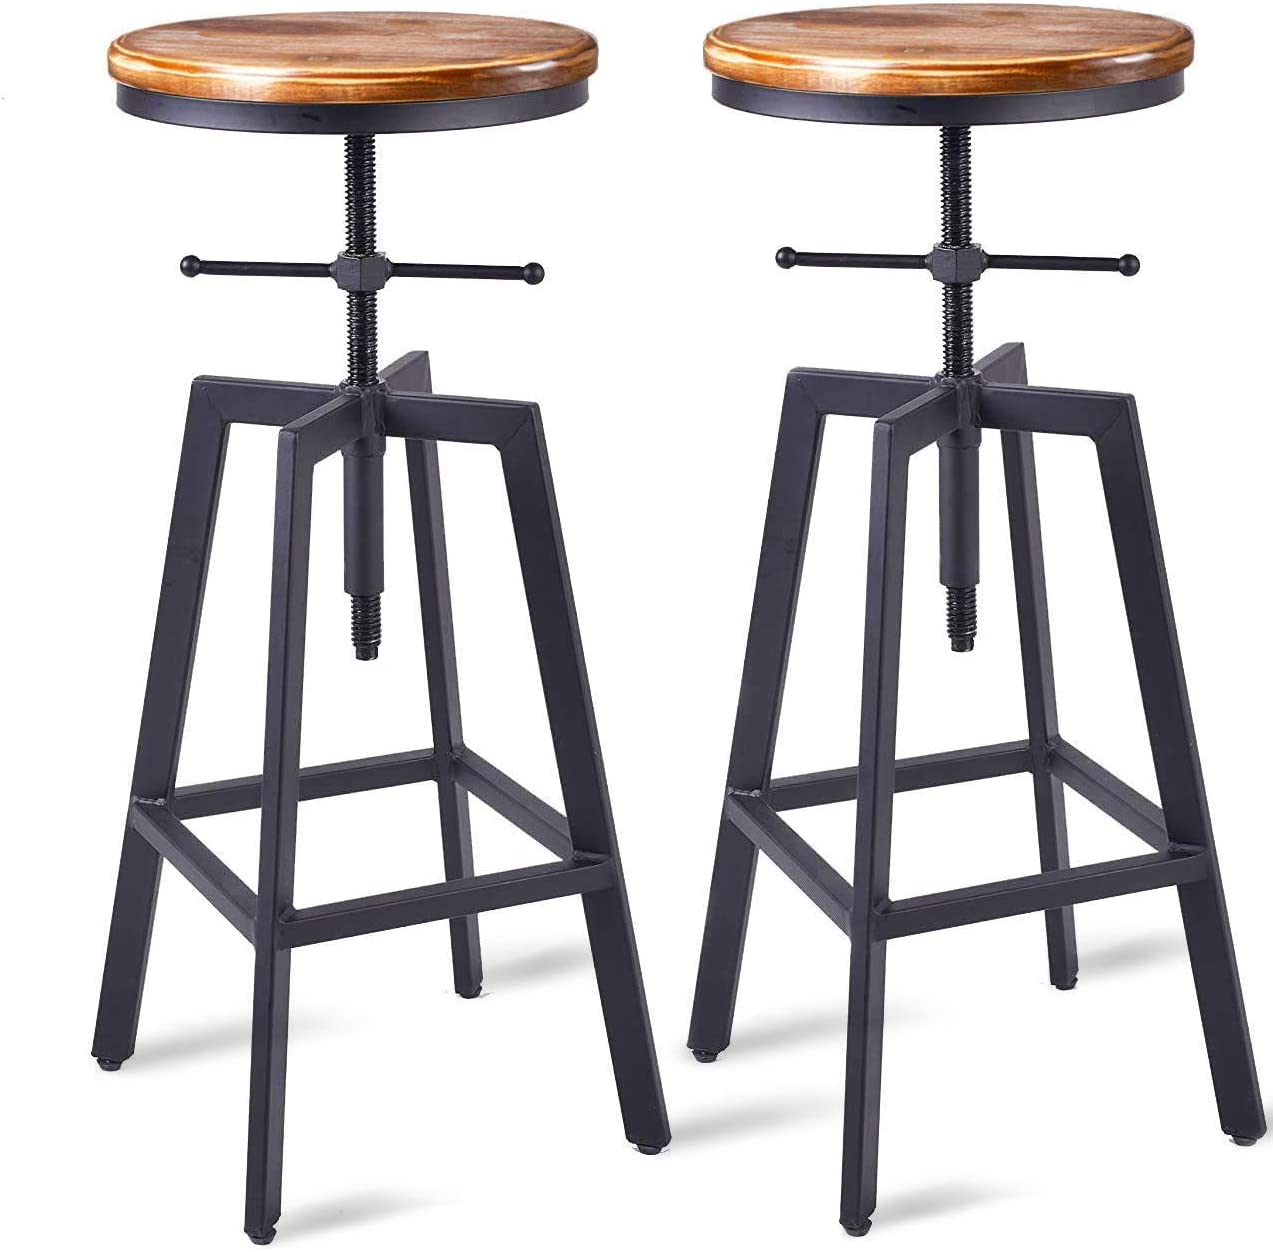 Diwhy Industrial Bar Stools,Kitchen Dining Chair,Wood Metal Bar  Stool,Adjustable Height Swivel Counter Height Bar Chair,Black,Fully Welded  Set of 9 ...